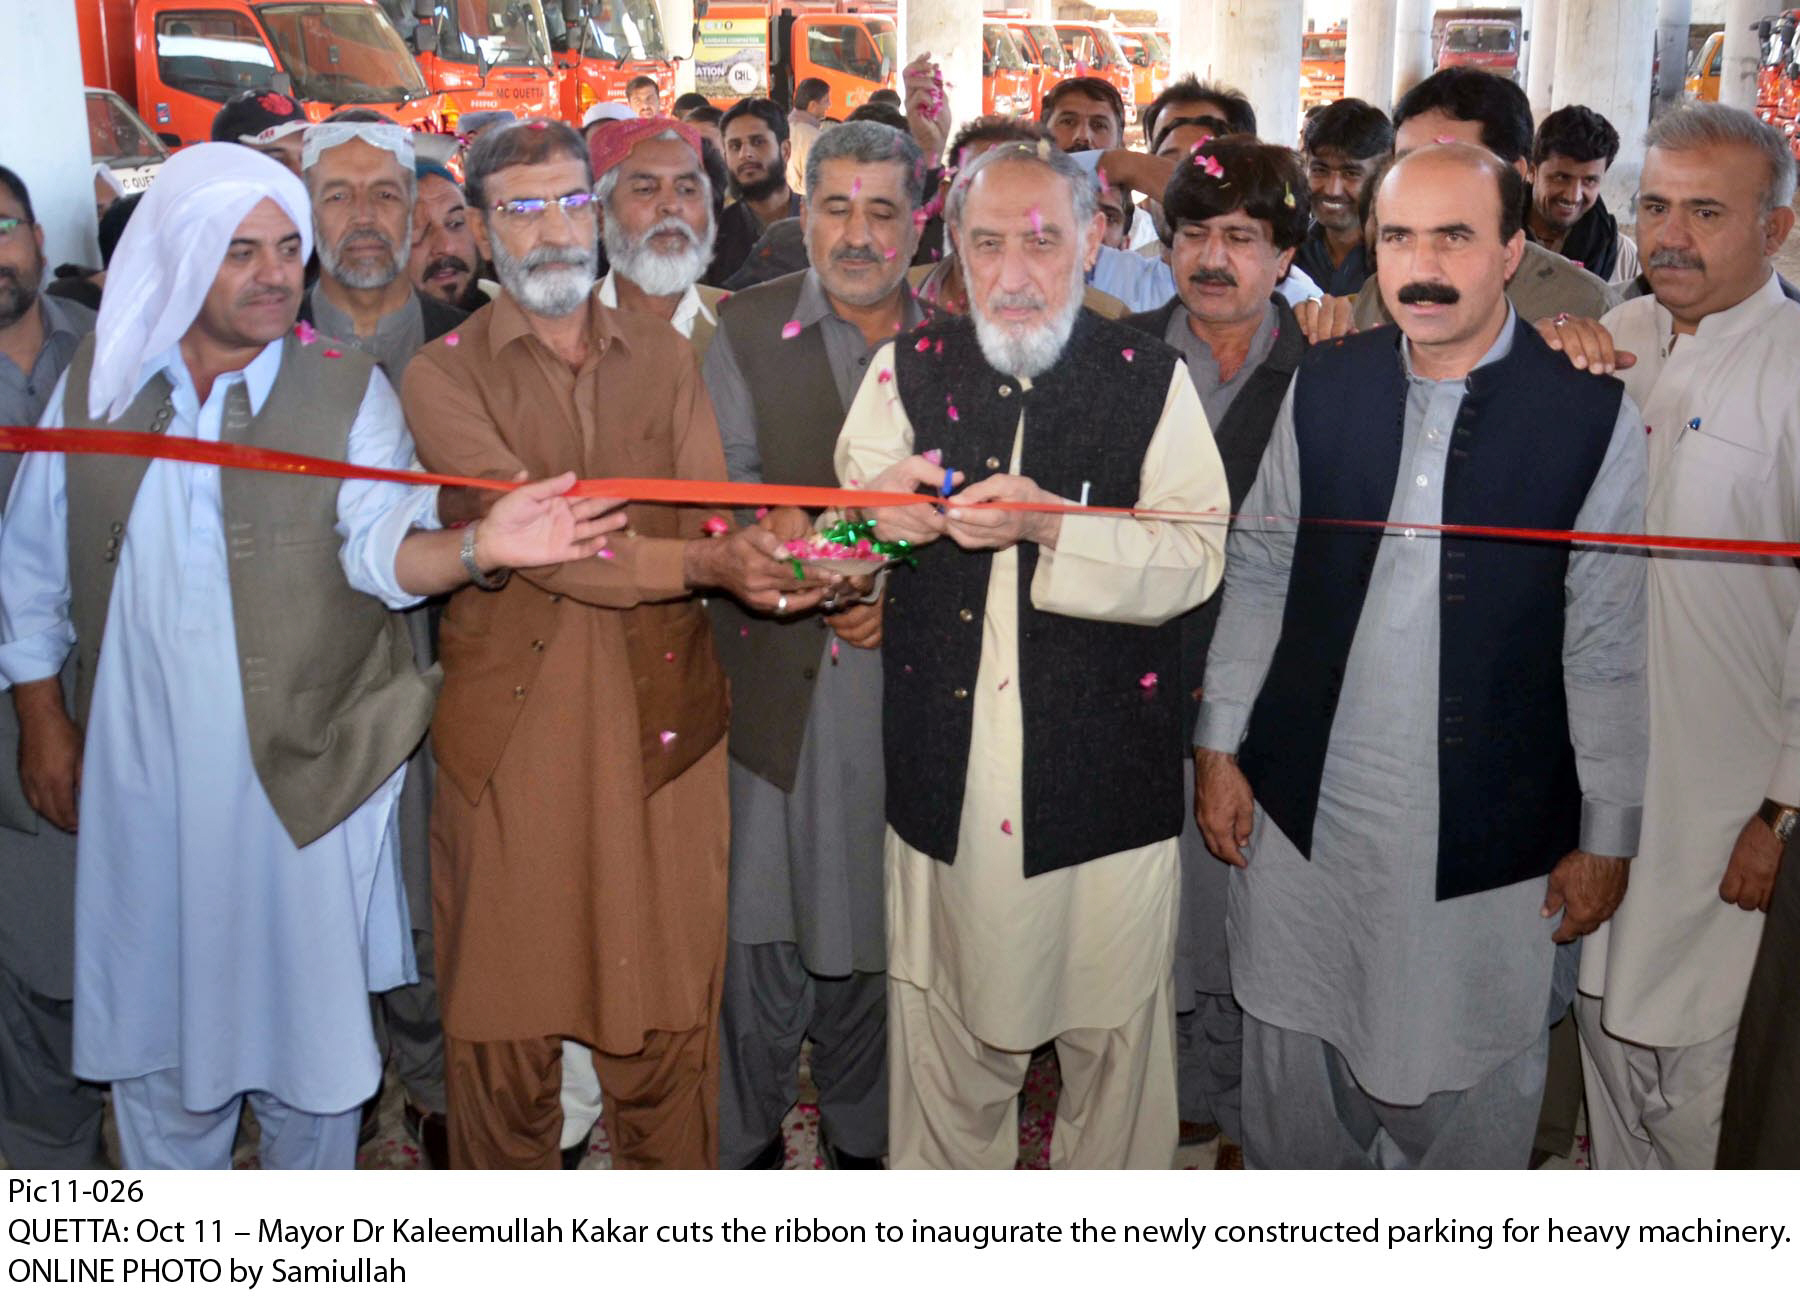 mayor aims to revive quetta s past glory